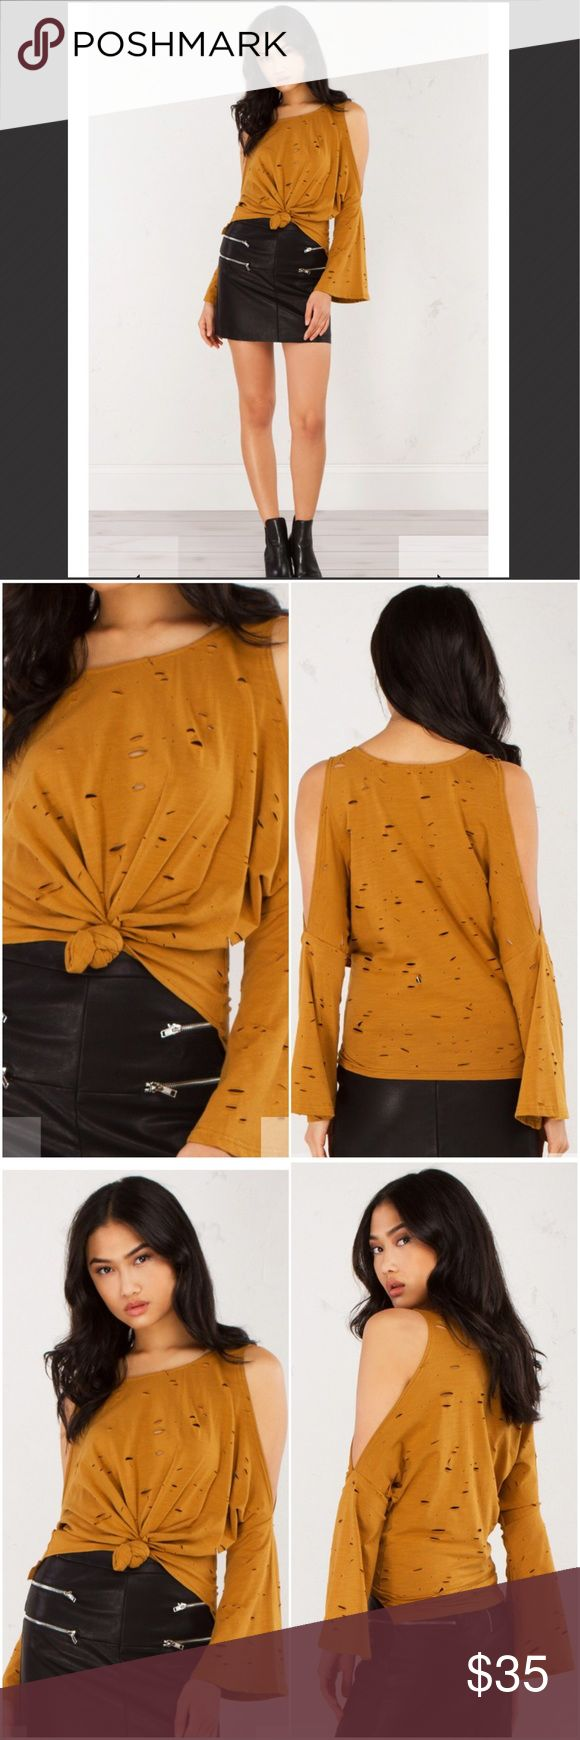 "🆕💋COLD SHOULDER TOP- Color Camel It should be illegal for a top to look this fab! Break the rules ladies, and clutch your paws onto the adorable Against The Rules Cold Shoulder Top. This exclusive piece is flooded with distressed cutouts and has exaggerated shoulder cutouts, flared long sleeves, a pull on construction and cropped front hem with knotted detail. Looking for a dynamite finishing touch? How about a sexy, black leather mini.  - 95% Cotton, 5% Spandex - 24"" from shoulder - Hand…"